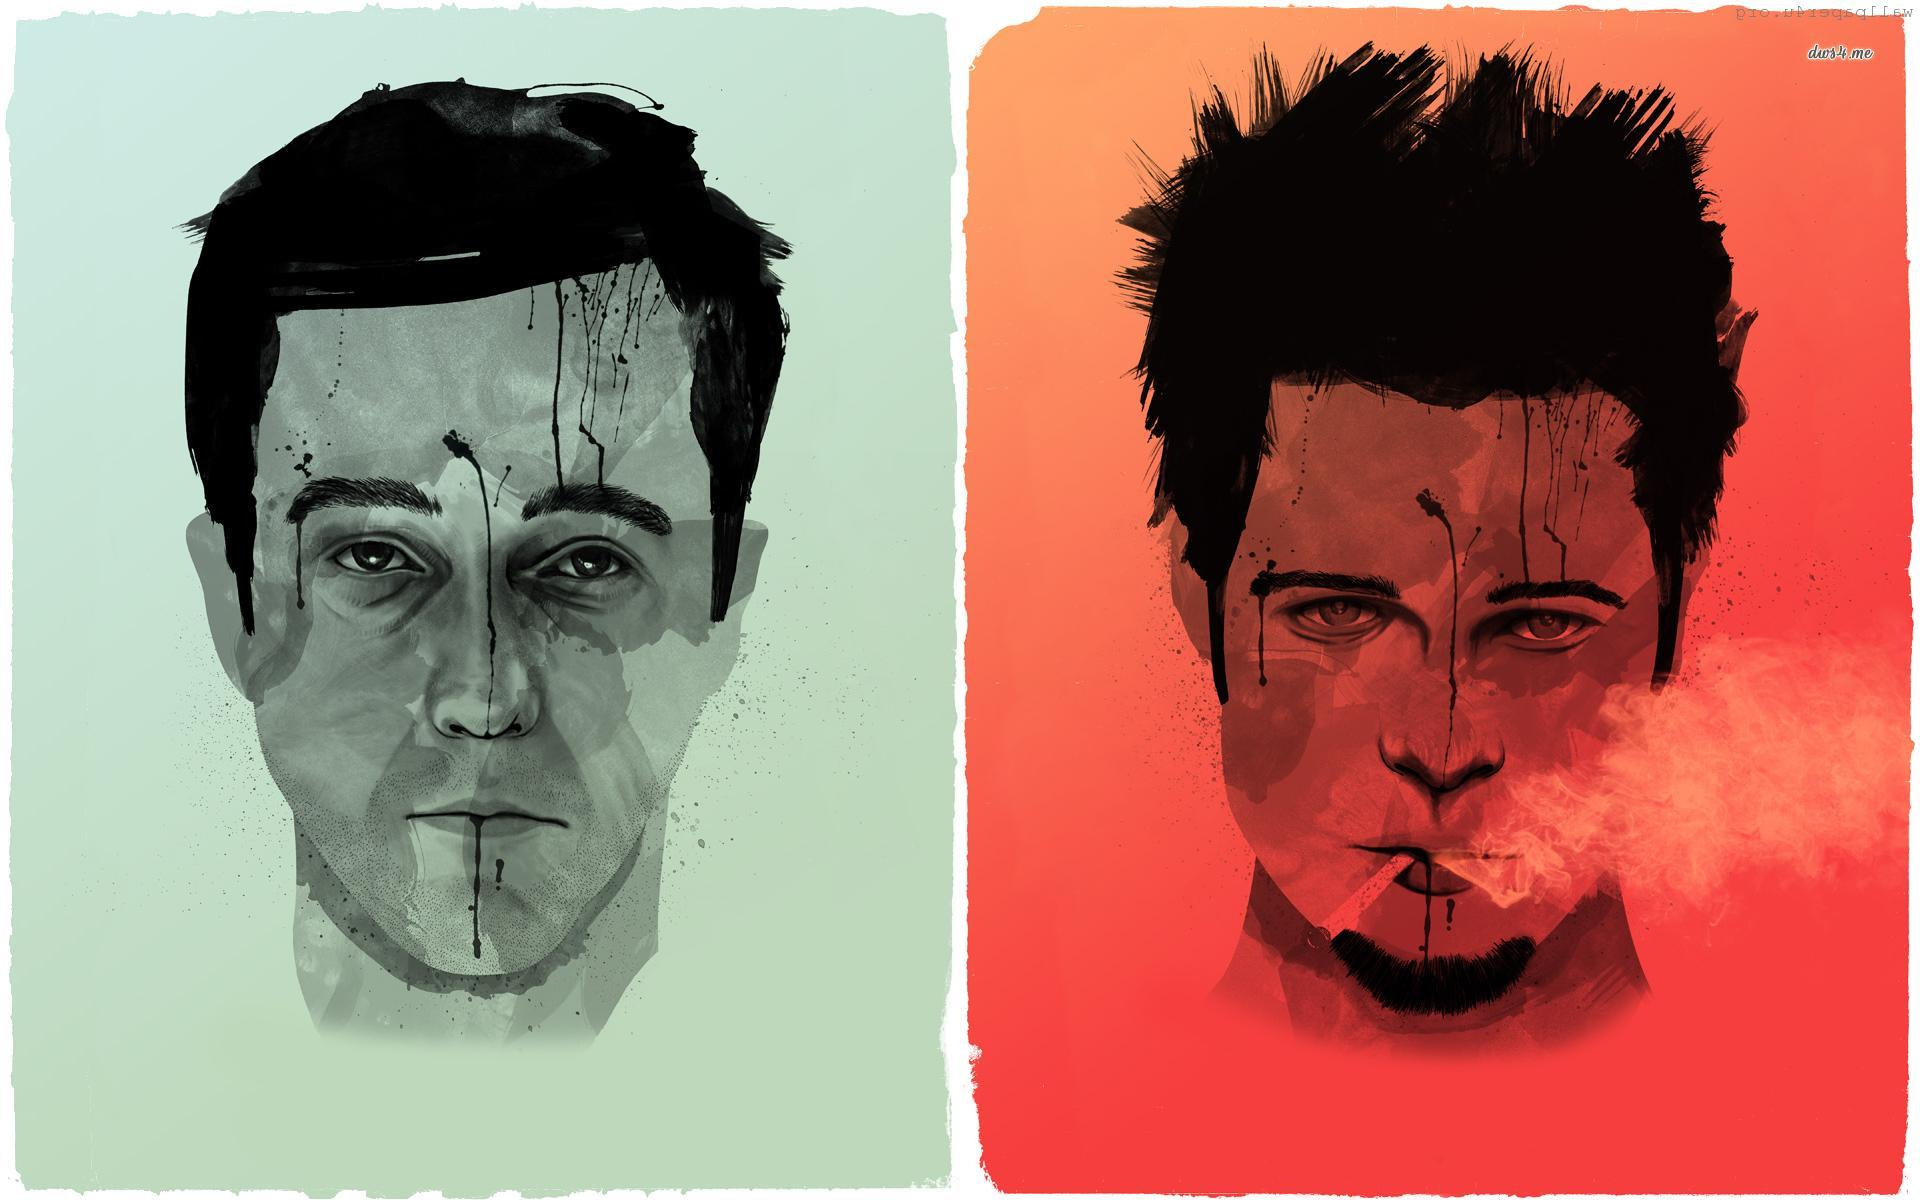 Fight Club Wallpapers, 100% Quality Fight Club HD Photos #GIP189, HD ...